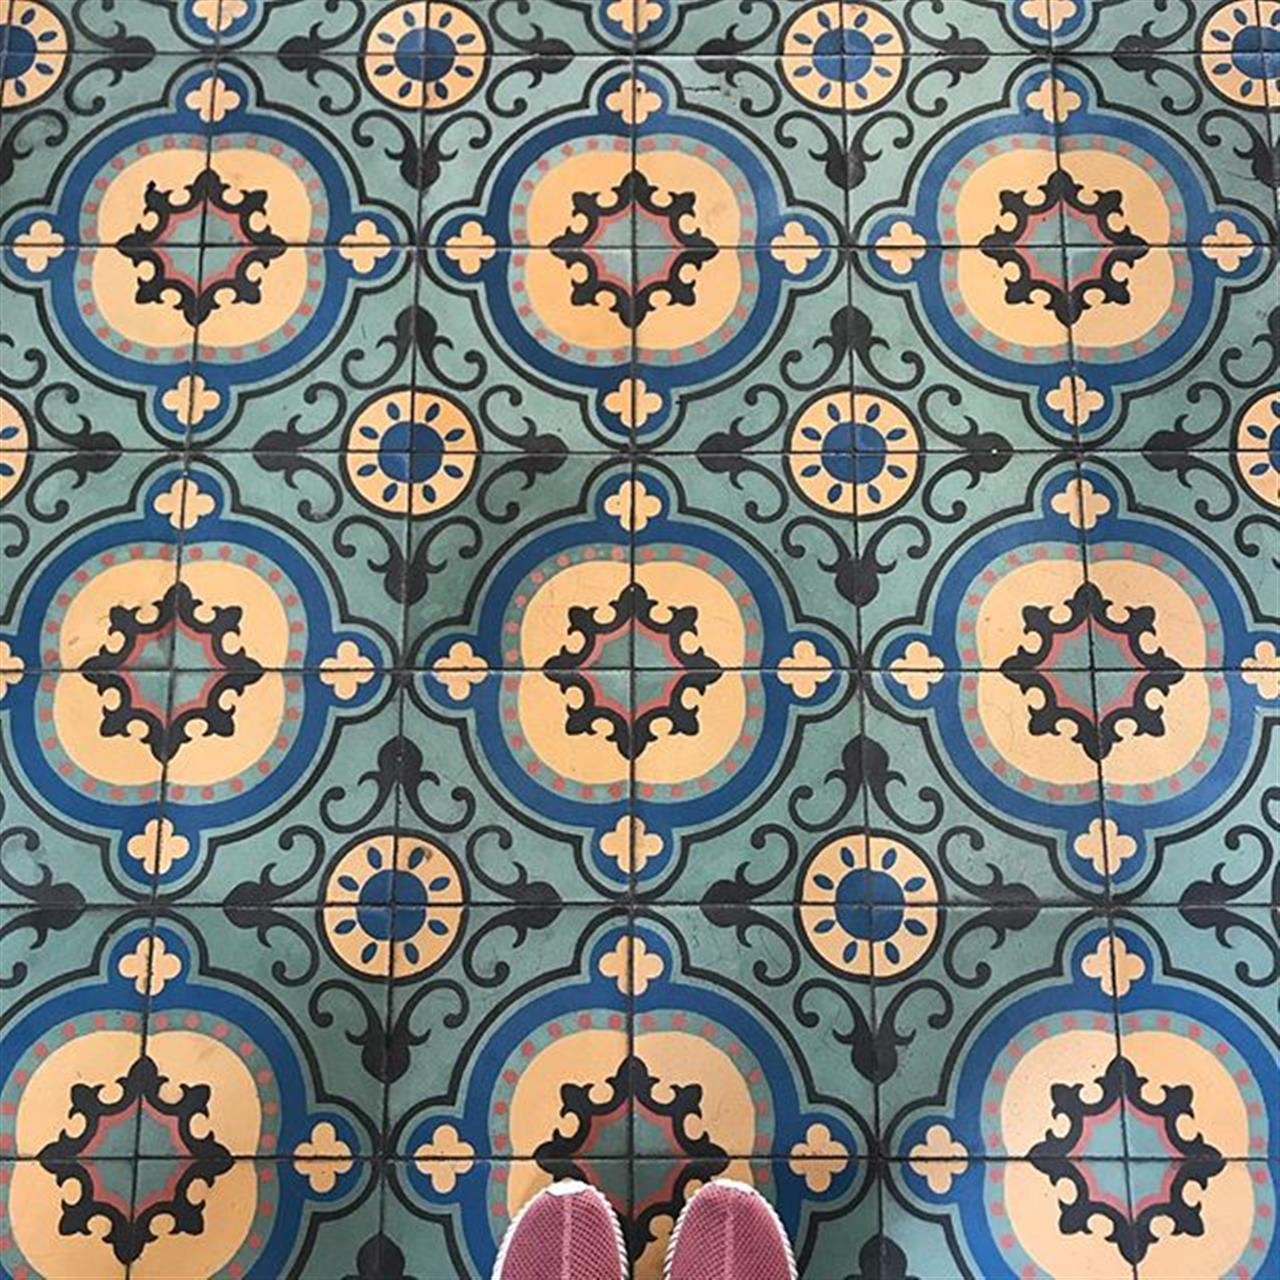 Beautiful Caribbean Style Tiles #tiles #victorian #city #dominicanrepublic #leadingrelocal #nostalgia